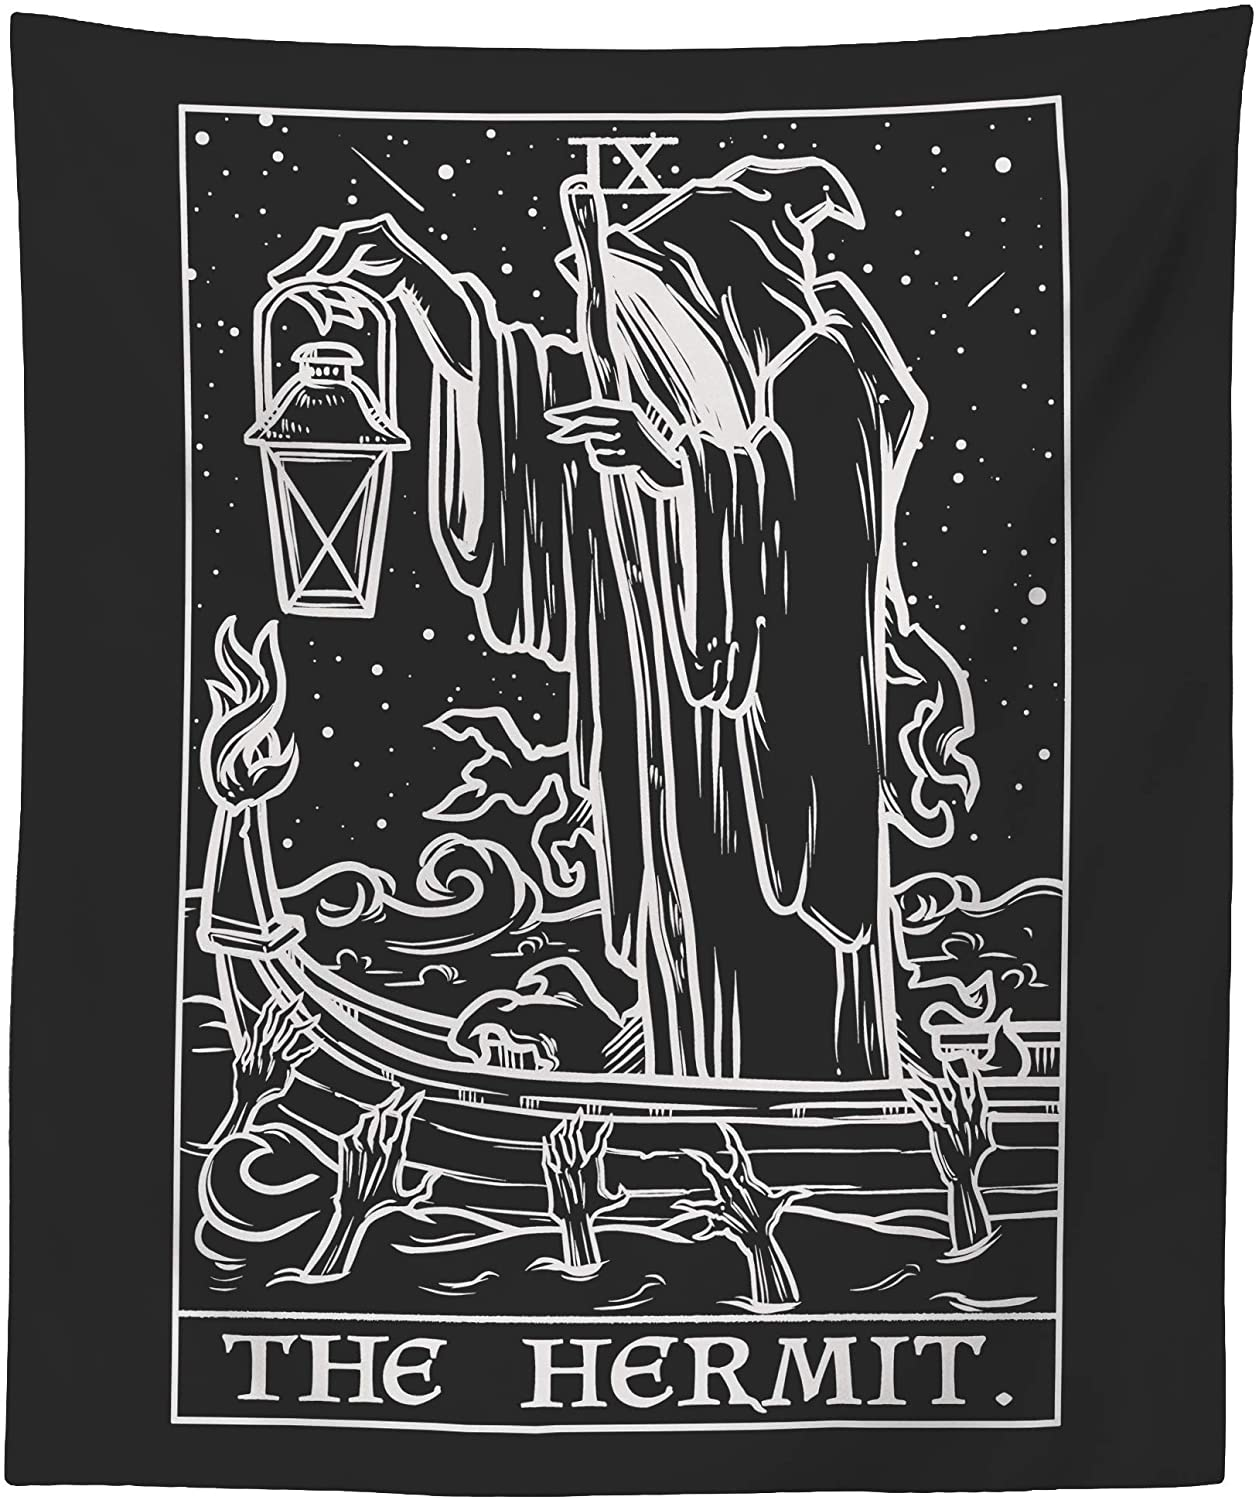 The Hermit Tarot Card Tapestry (Black & White) - Grim Reaper - Gothic Halloween Home Decor Wall Hanging (59